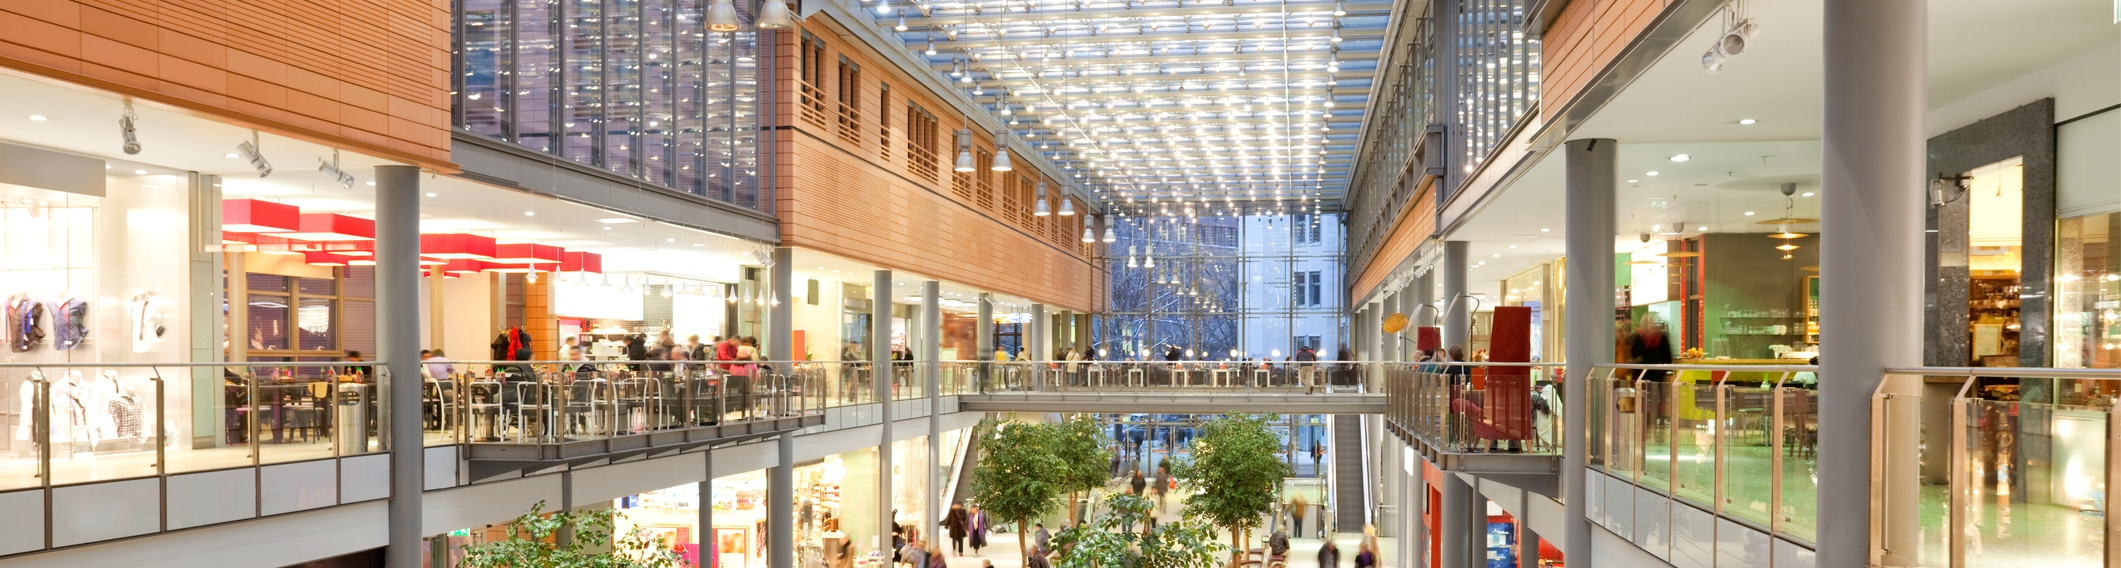 Large indoor shopping mall